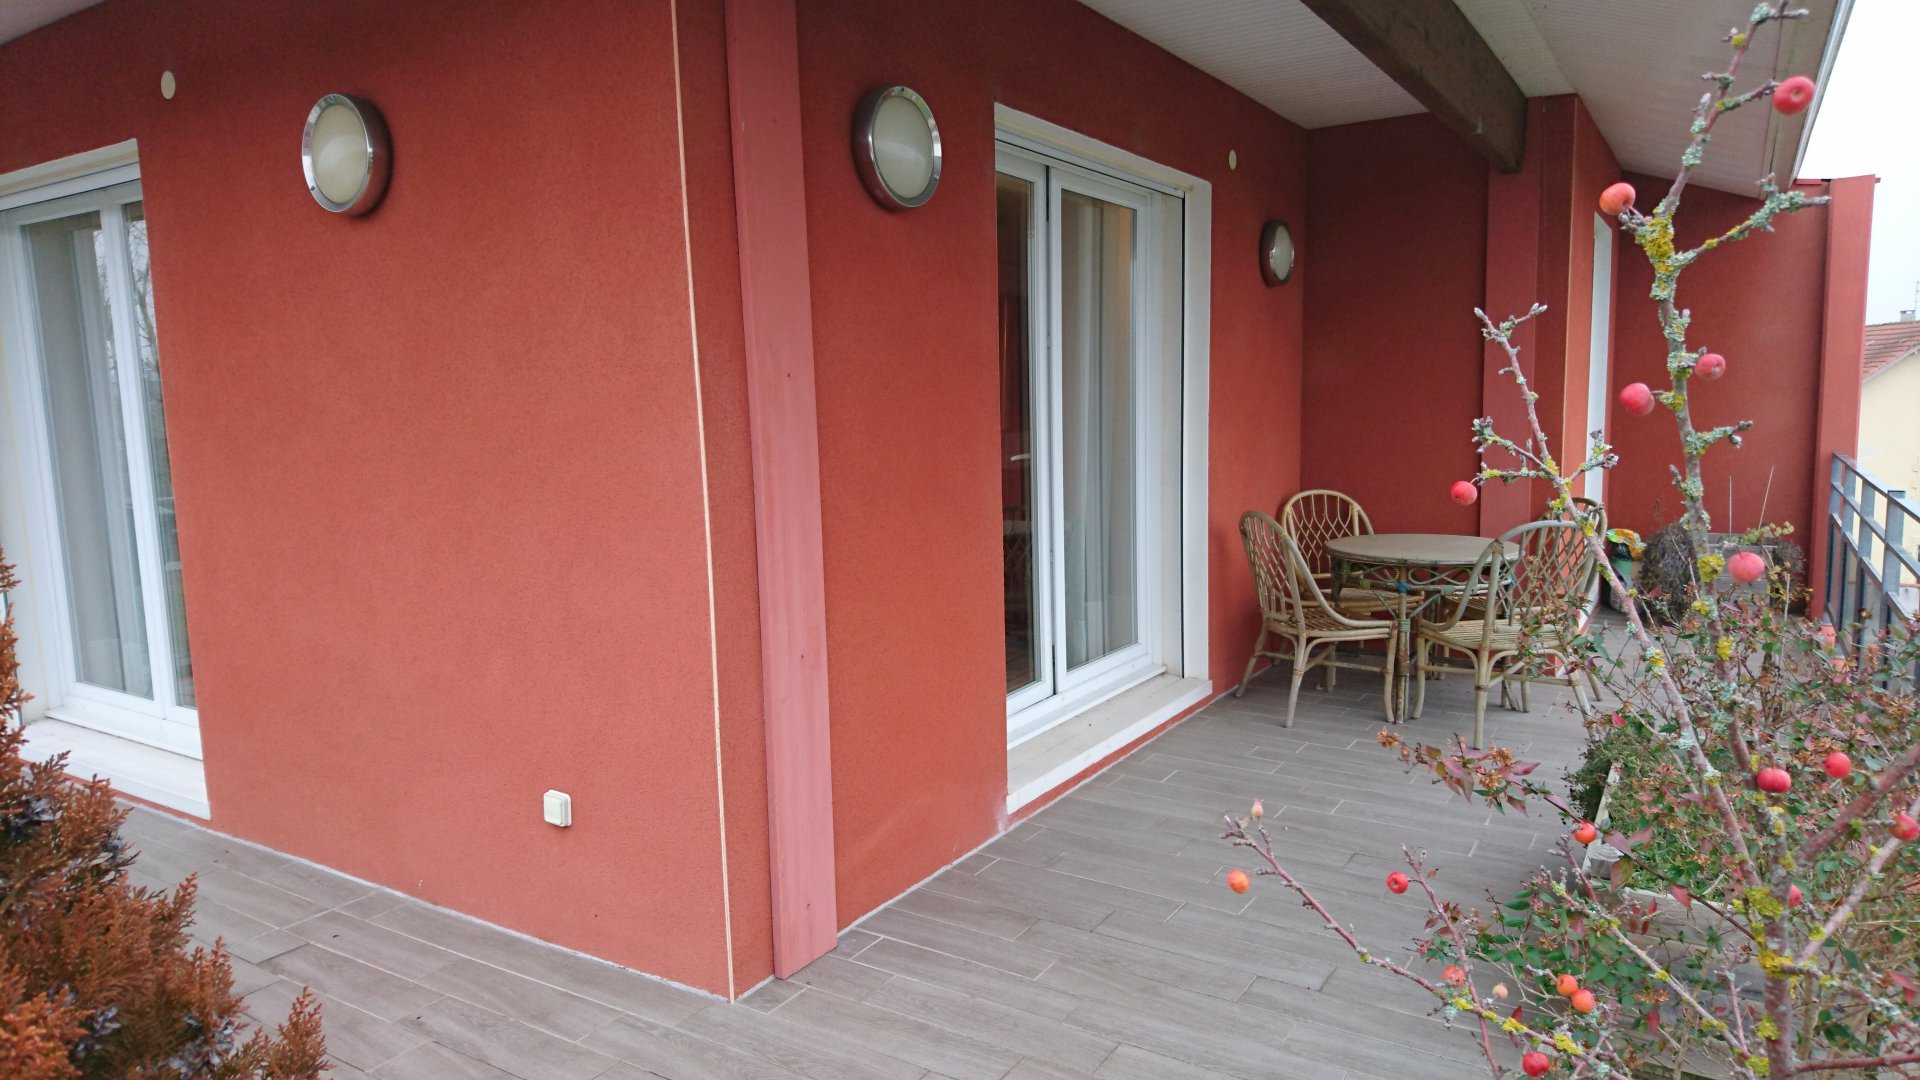 Appartement de grand standing de 180.36 m² sur balcons et terrasses de 53.33 m²